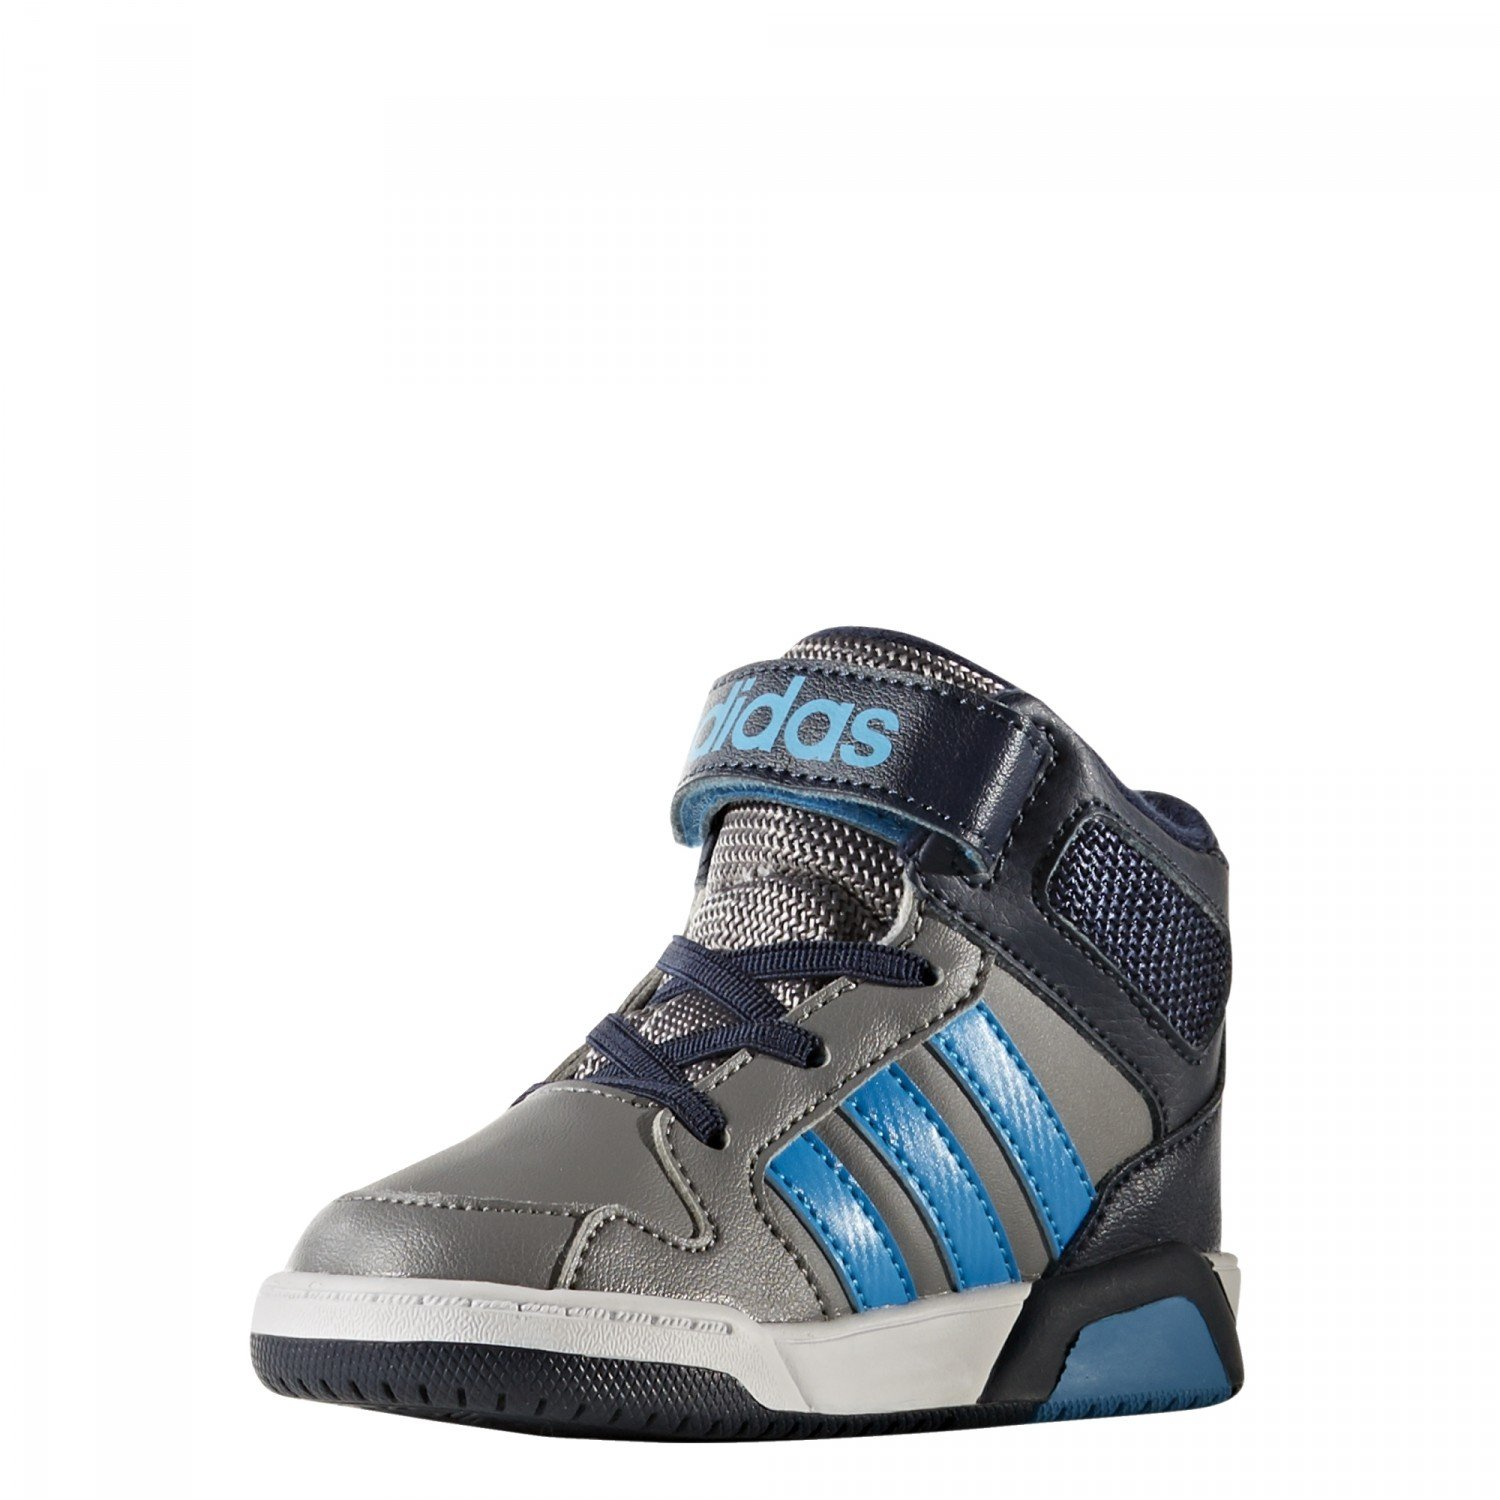 Adidas Bb9tis Inf, Baskets Mixte bébé Baskets Mixte bébé BB9960